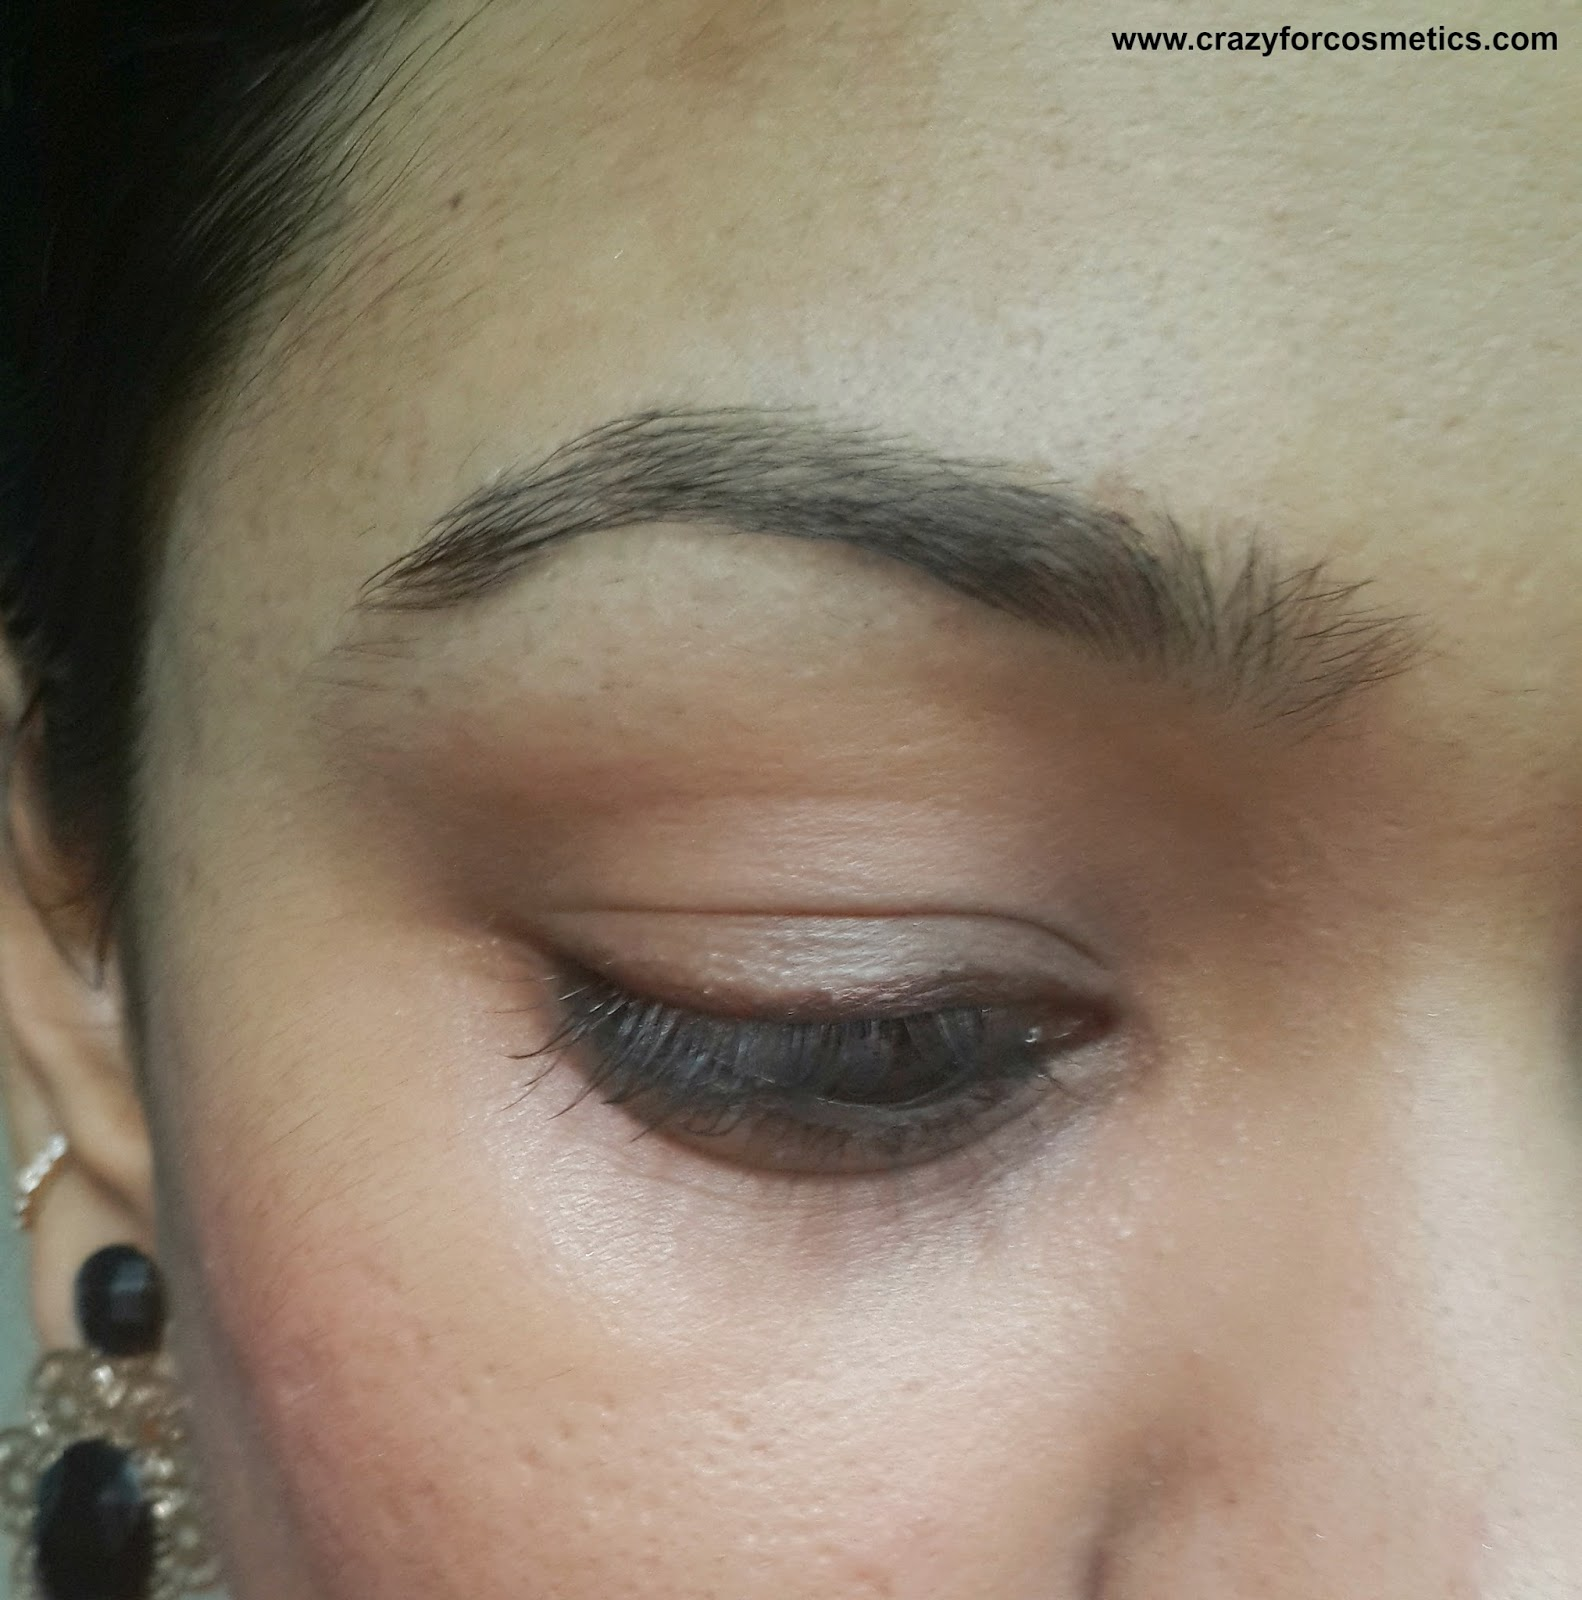 L'Oreal Paris Superliner Gelmatic Eyeliner in Deep Brown cost